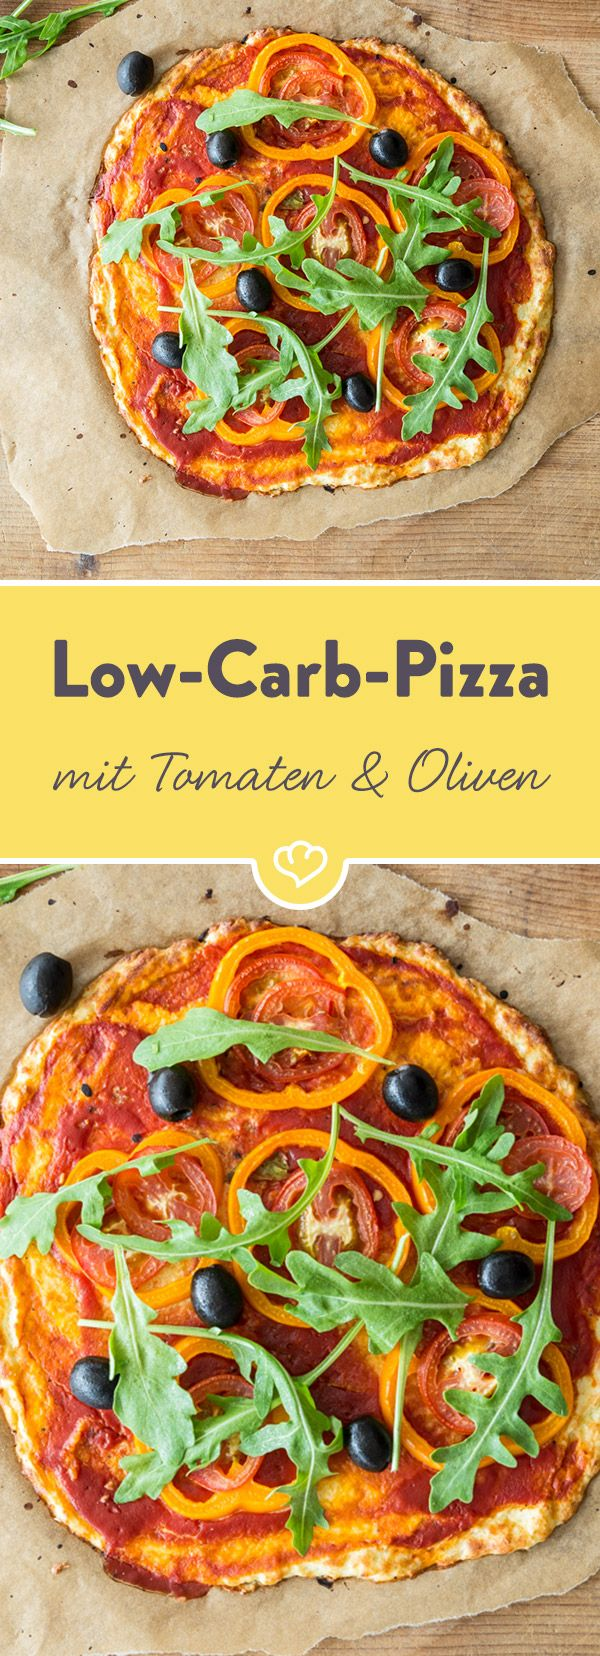 low carb pizza mit tomaten oliven und rucola rezept. Black Bedroom Furniture Sets. Home Design Ideas